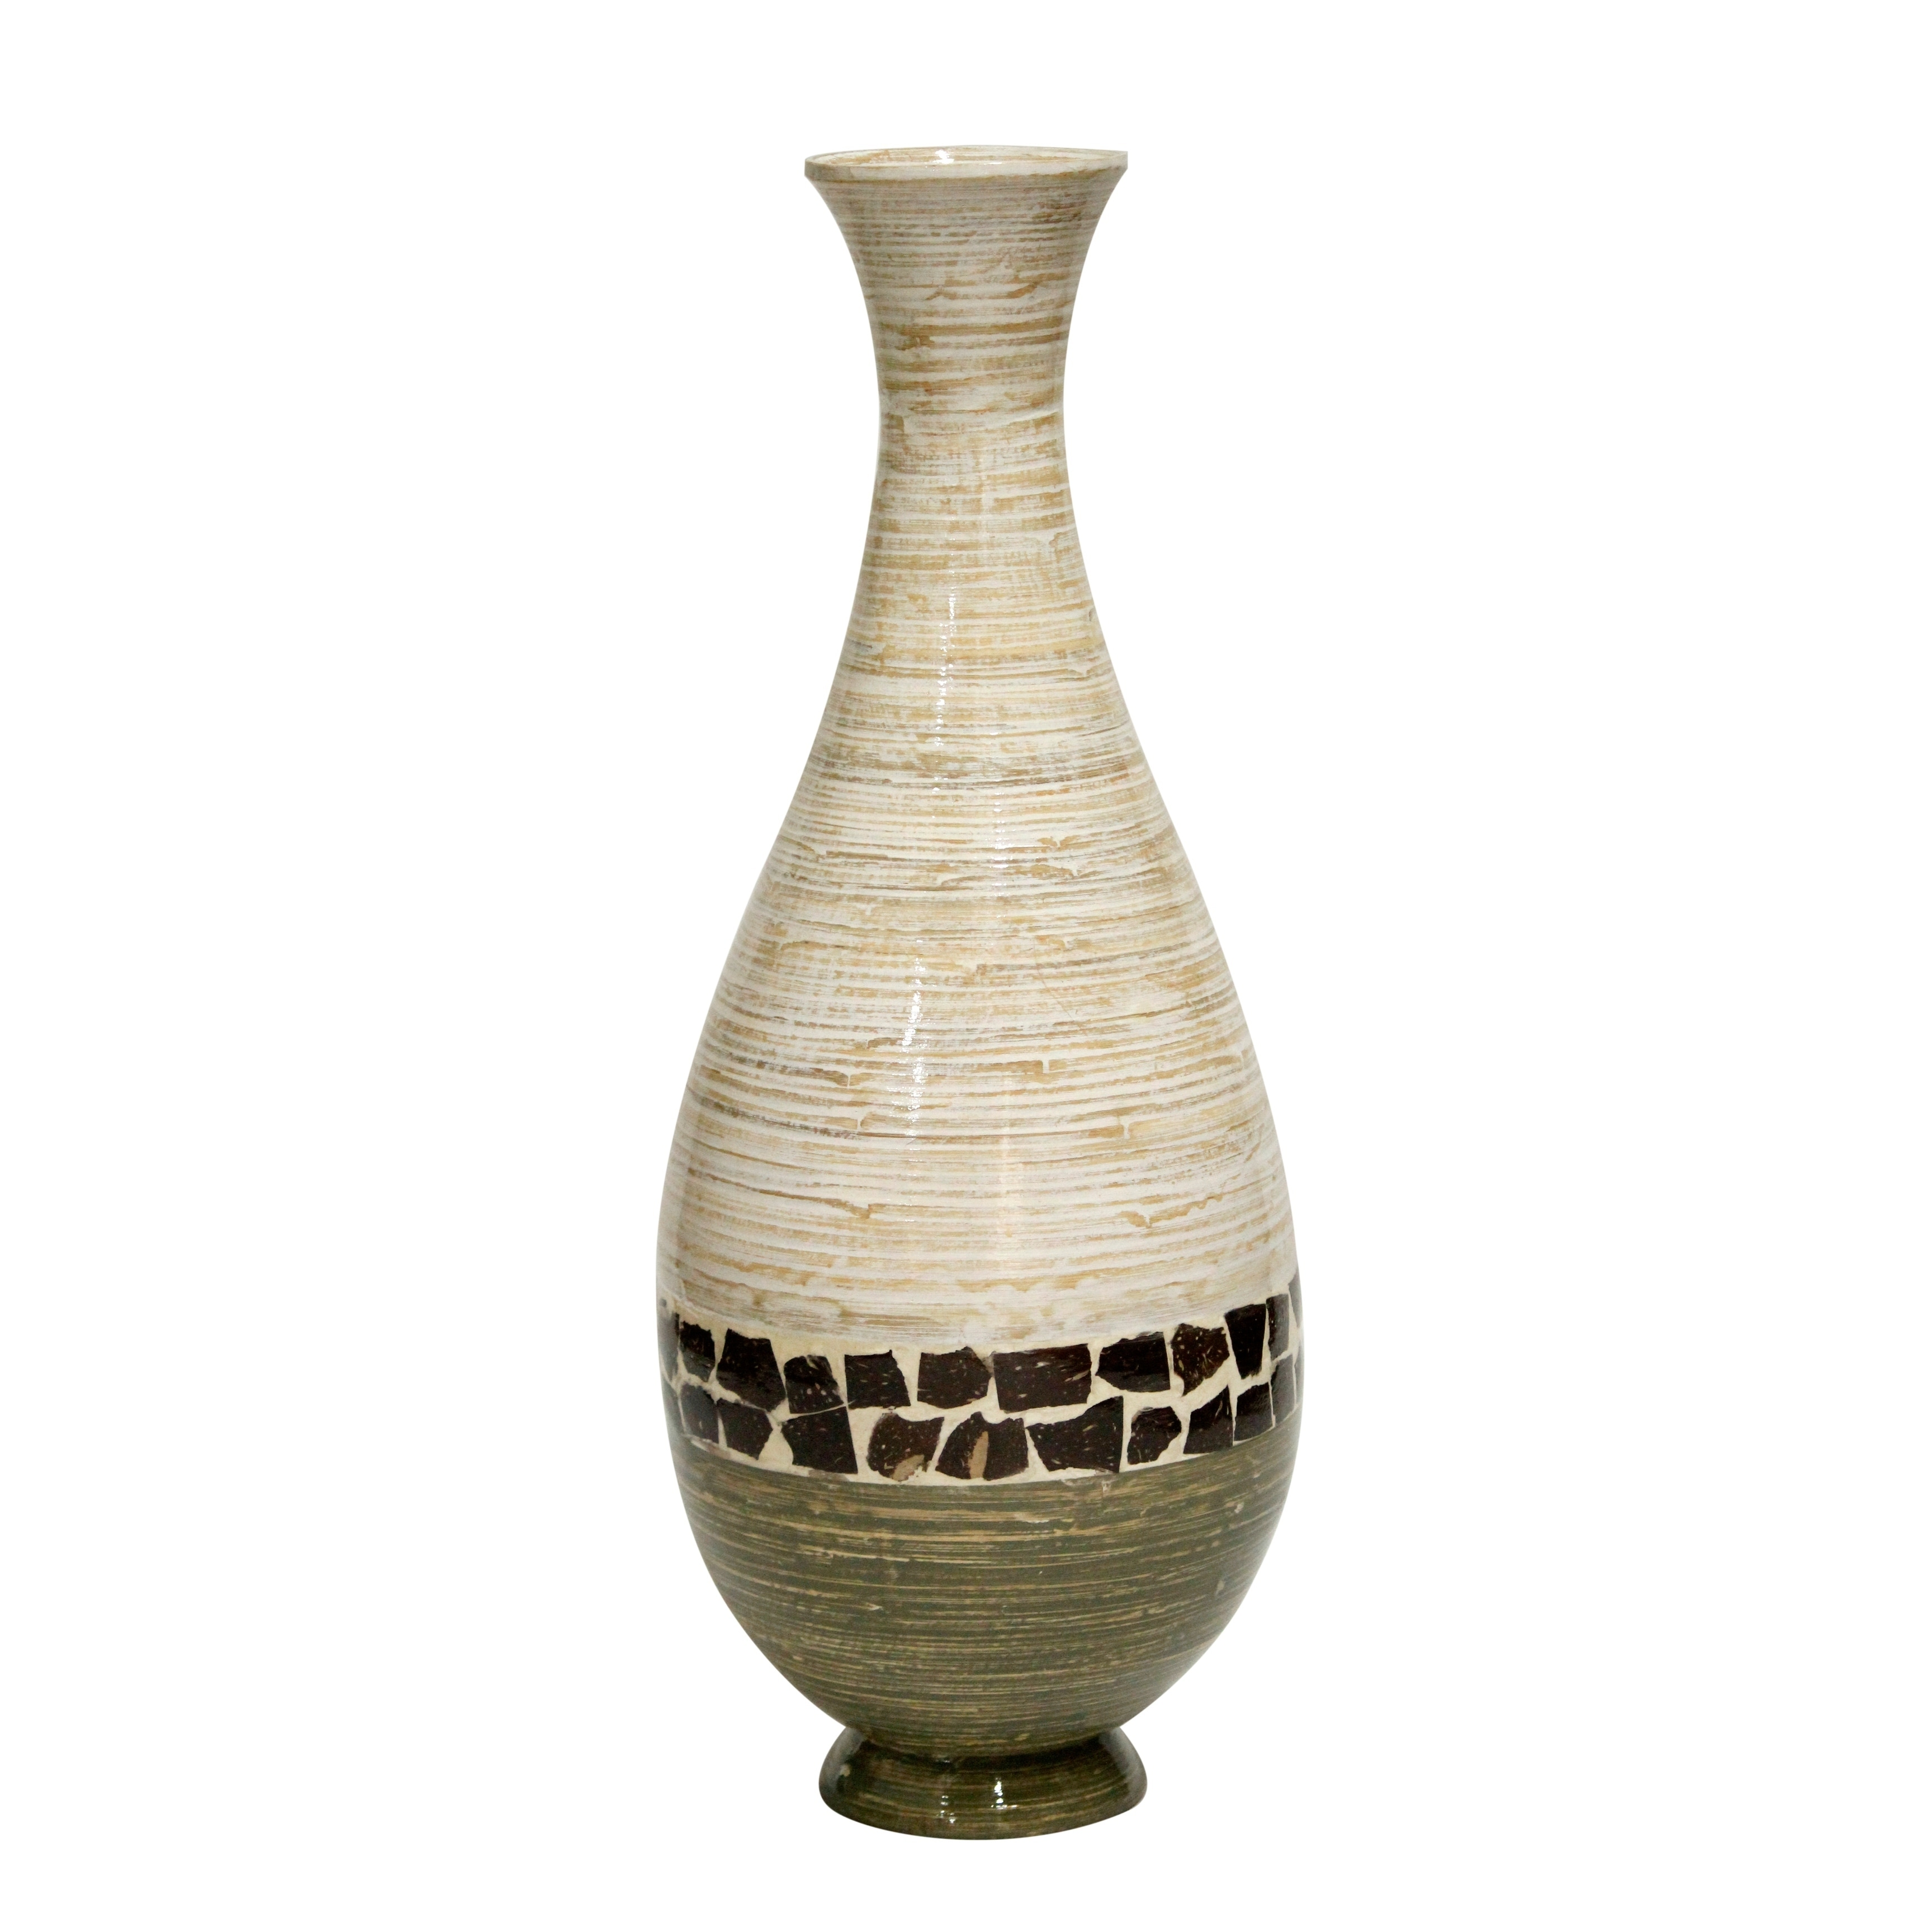 Buy Green Vases Online at Overstock.com | Our Best Decorative ... on pottery lids, vases from india, vases with ornaments in it, vases with bottles, vases with top sealer, vases worth money, vases with liners, vases with caps, vases in bulk, vases with handles, vases with corks,